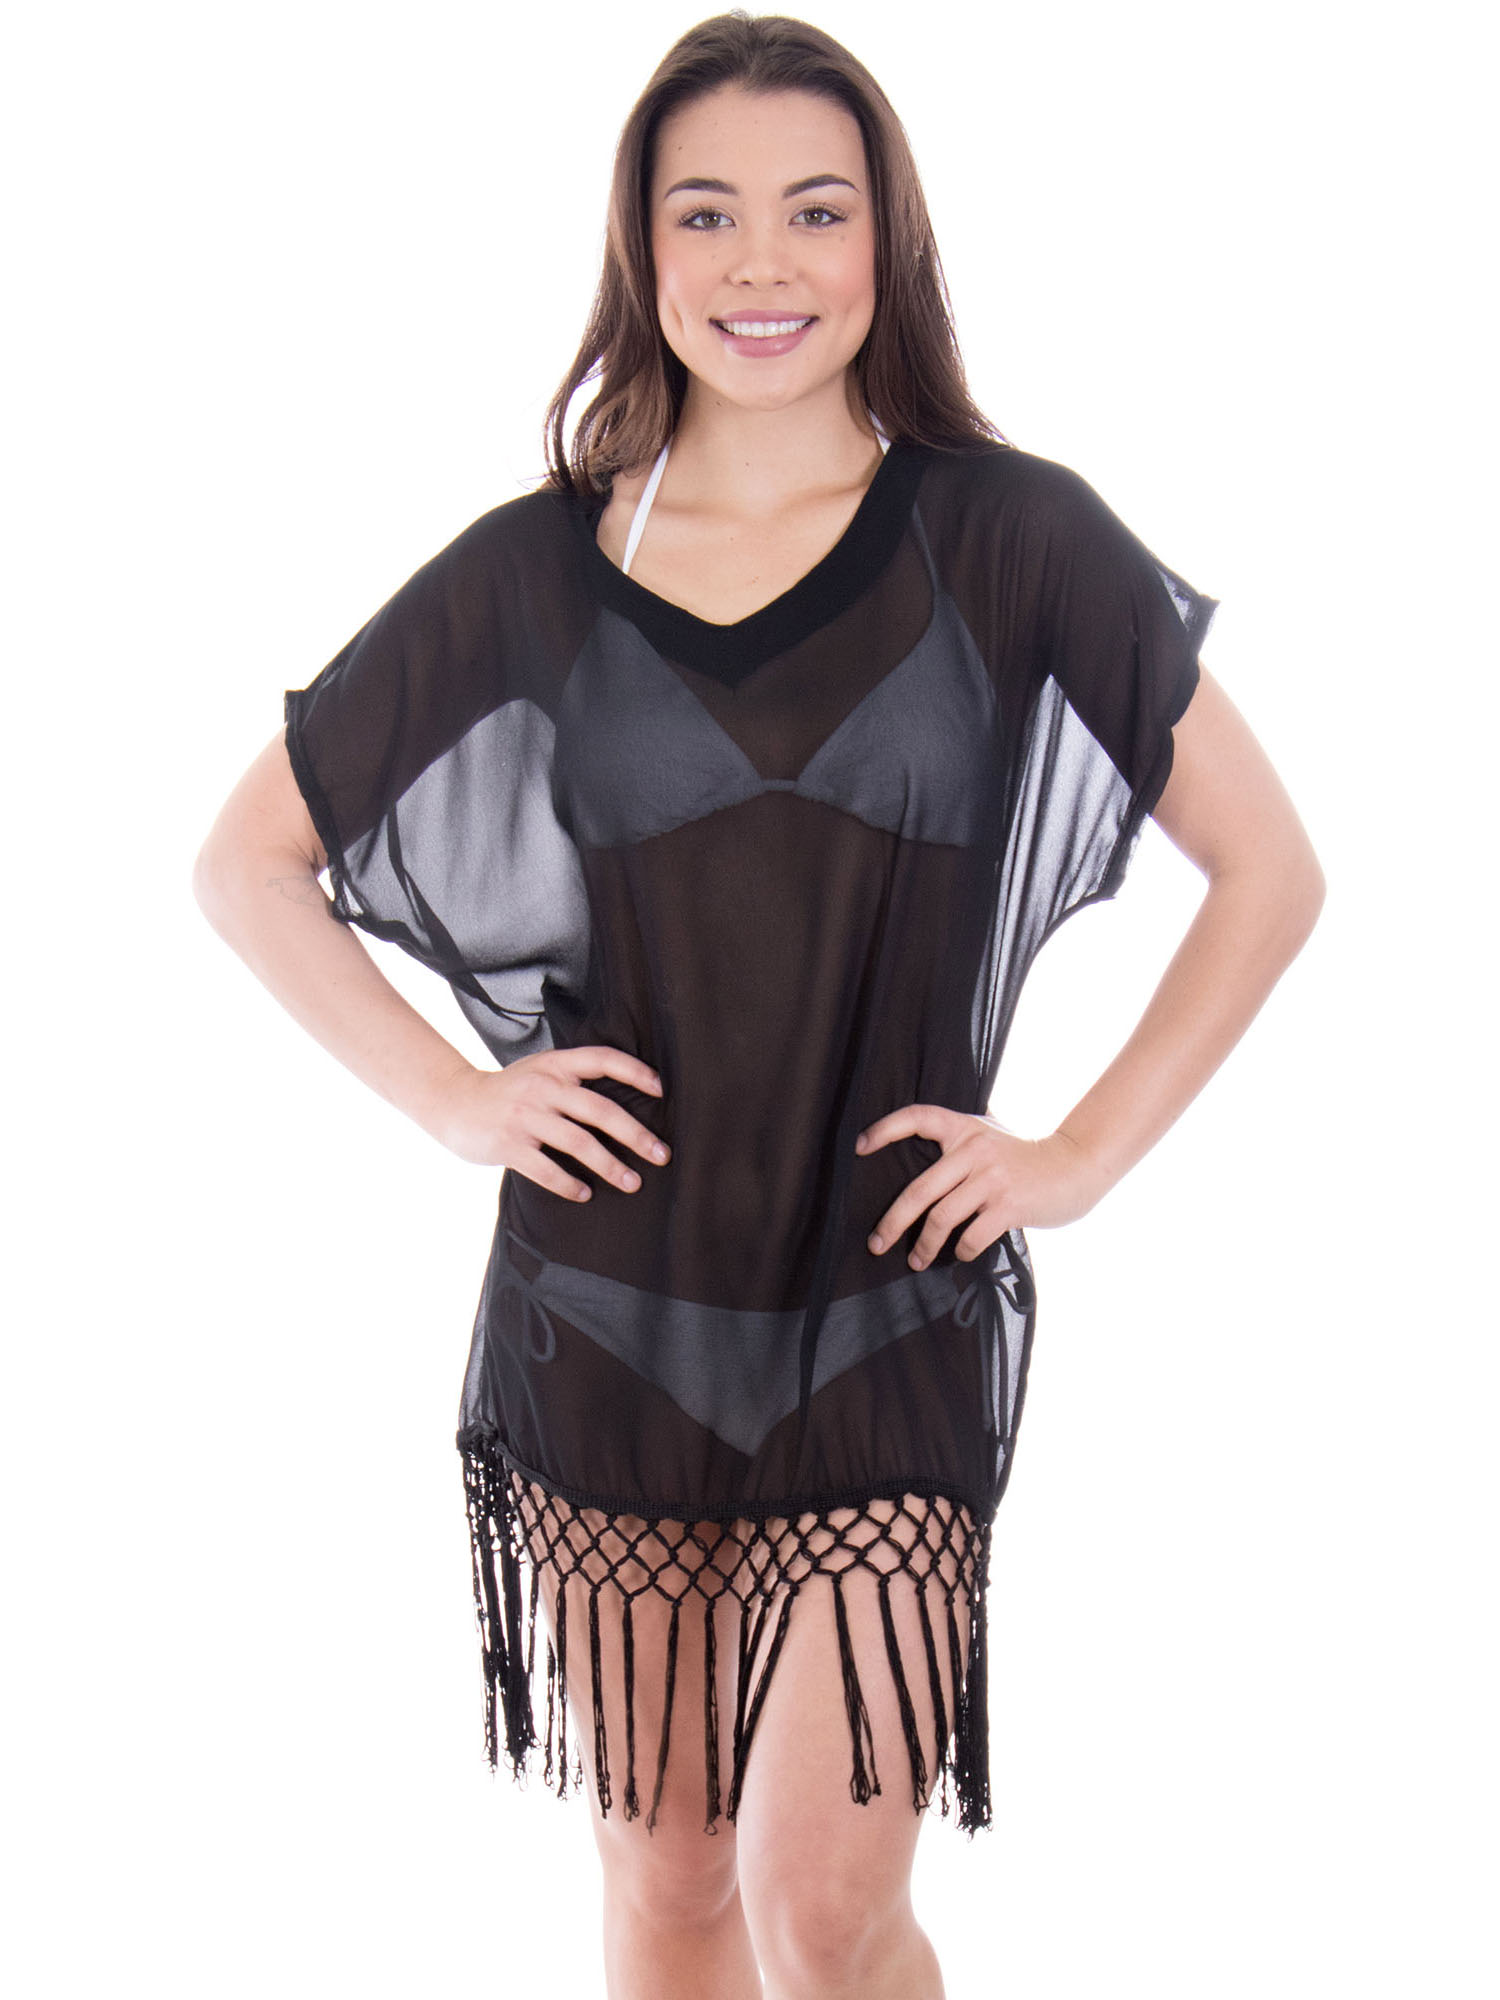 Women's Swimwear Knit Crochet Fringed Cover-Up Beach Dress, Black